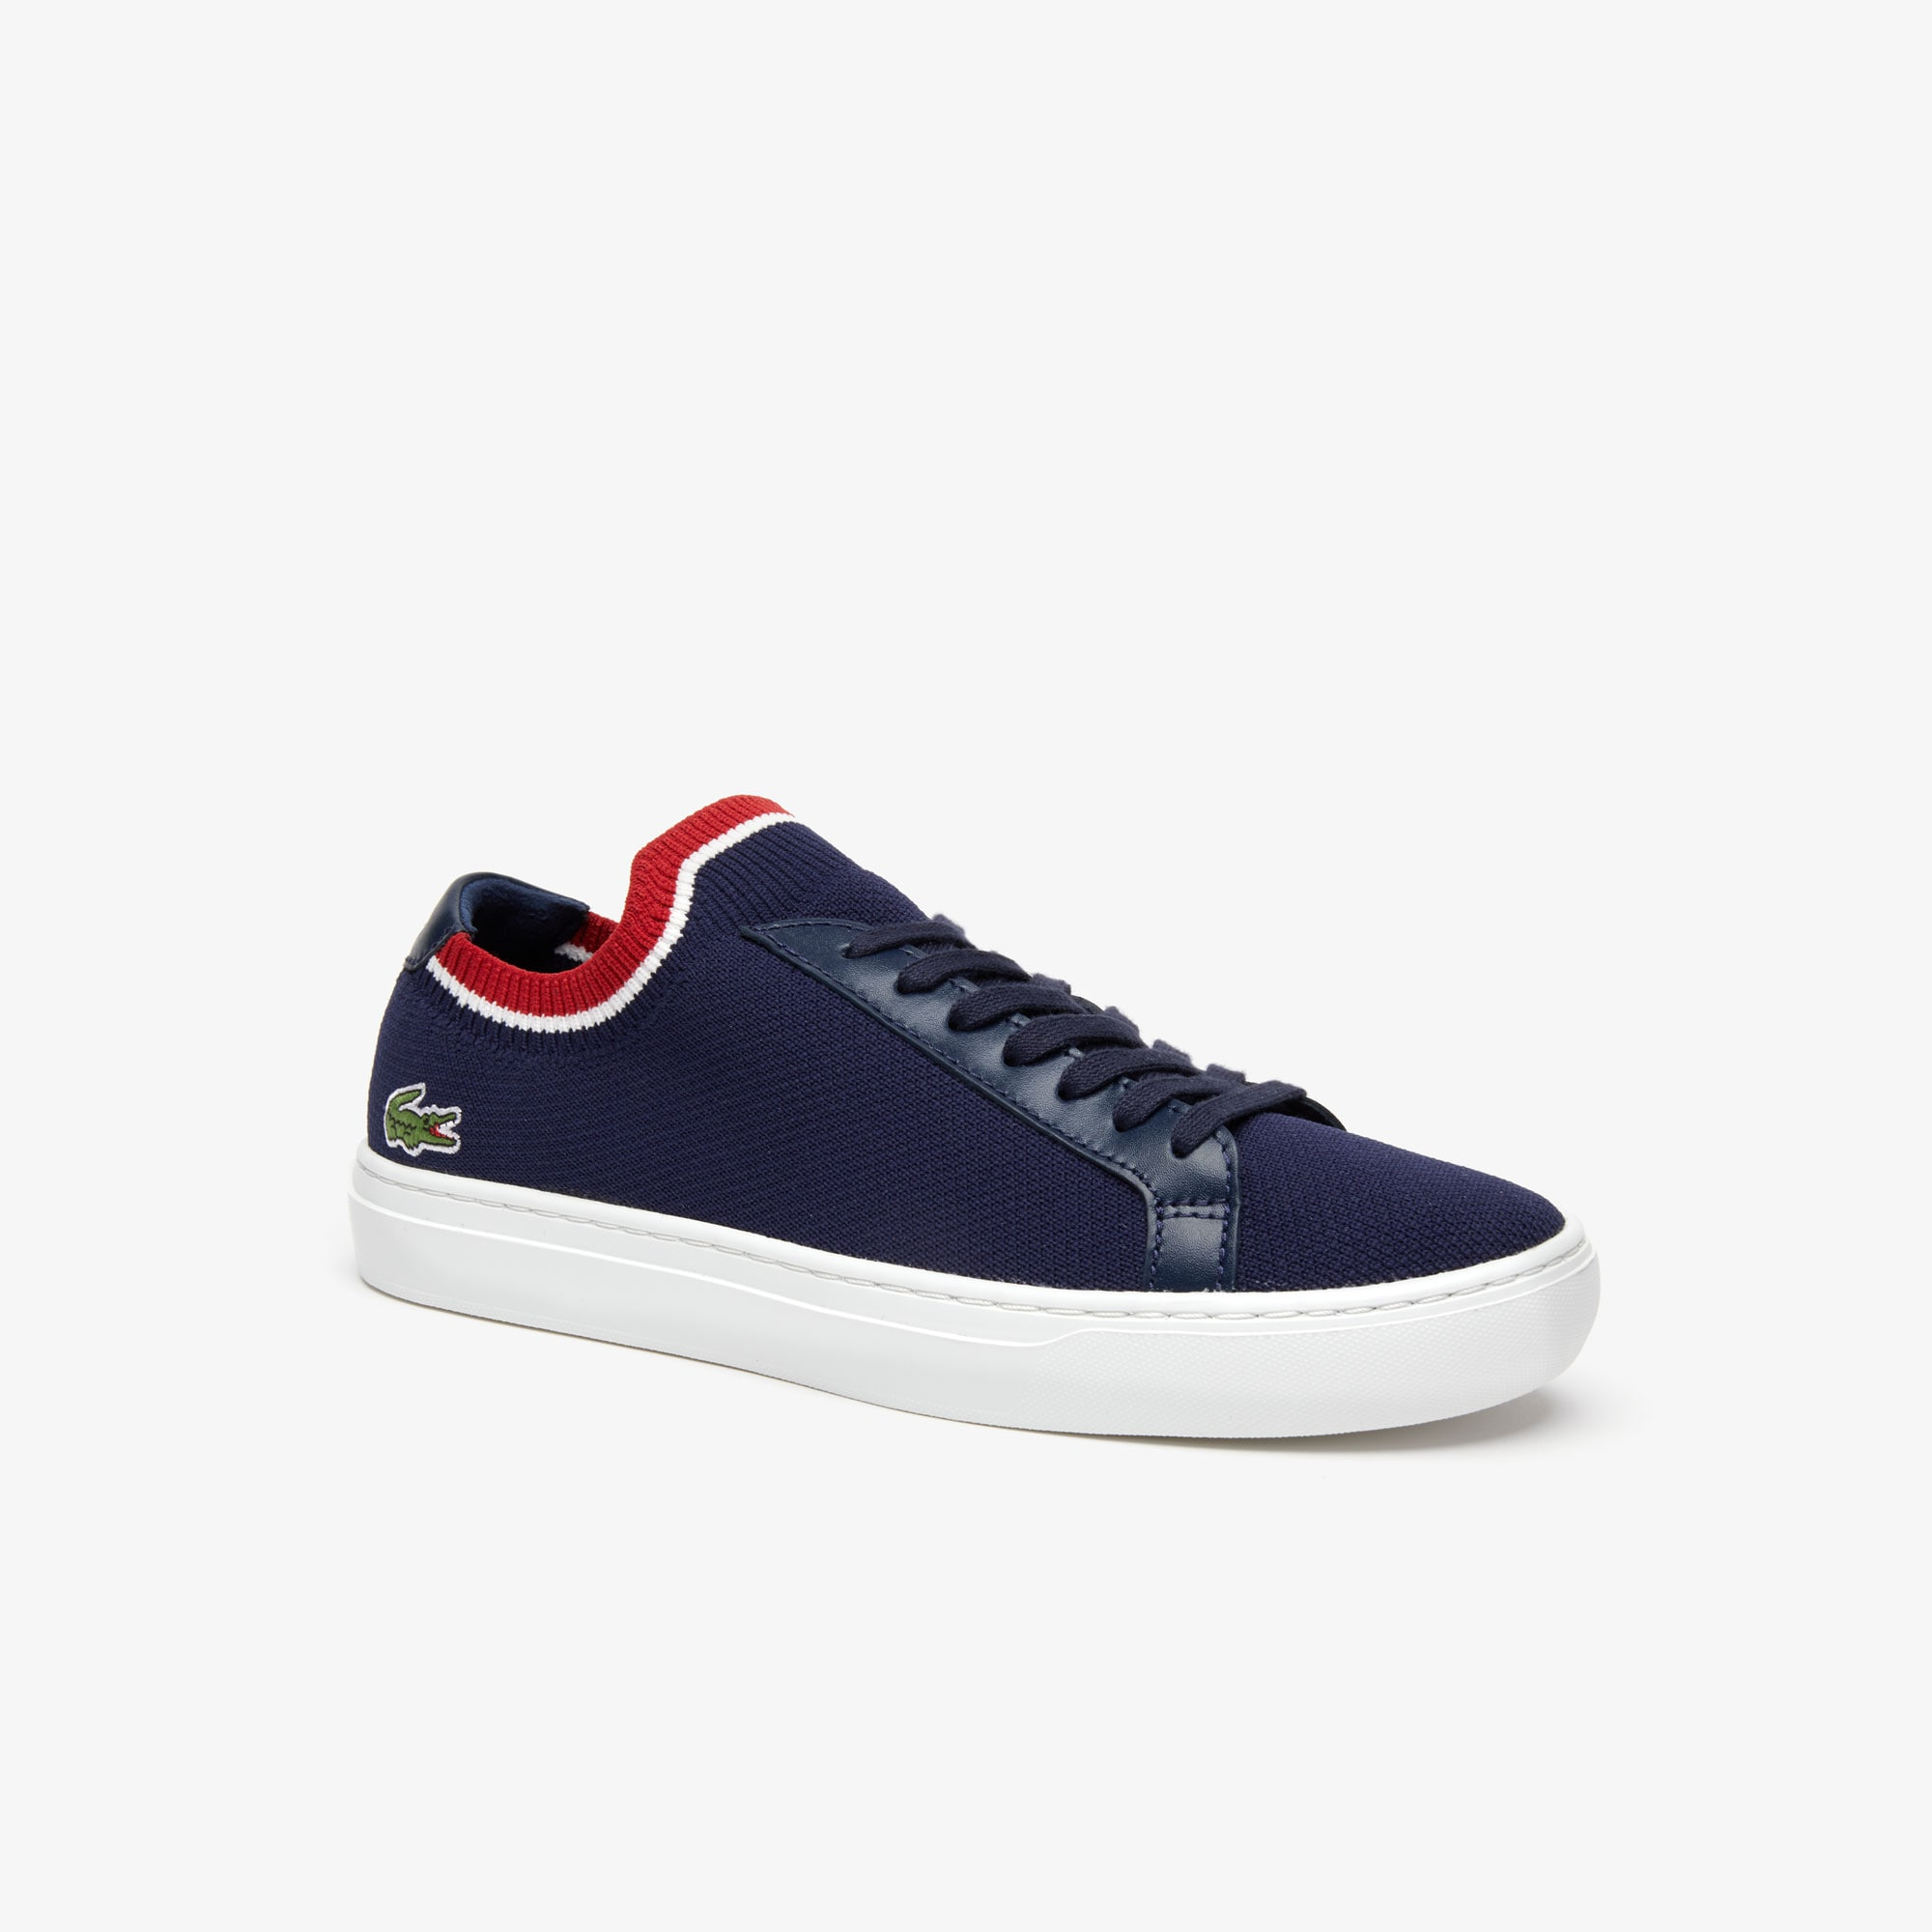 333333998 Men s La Piquée Textile Trainers. £95.00. + 3 colors